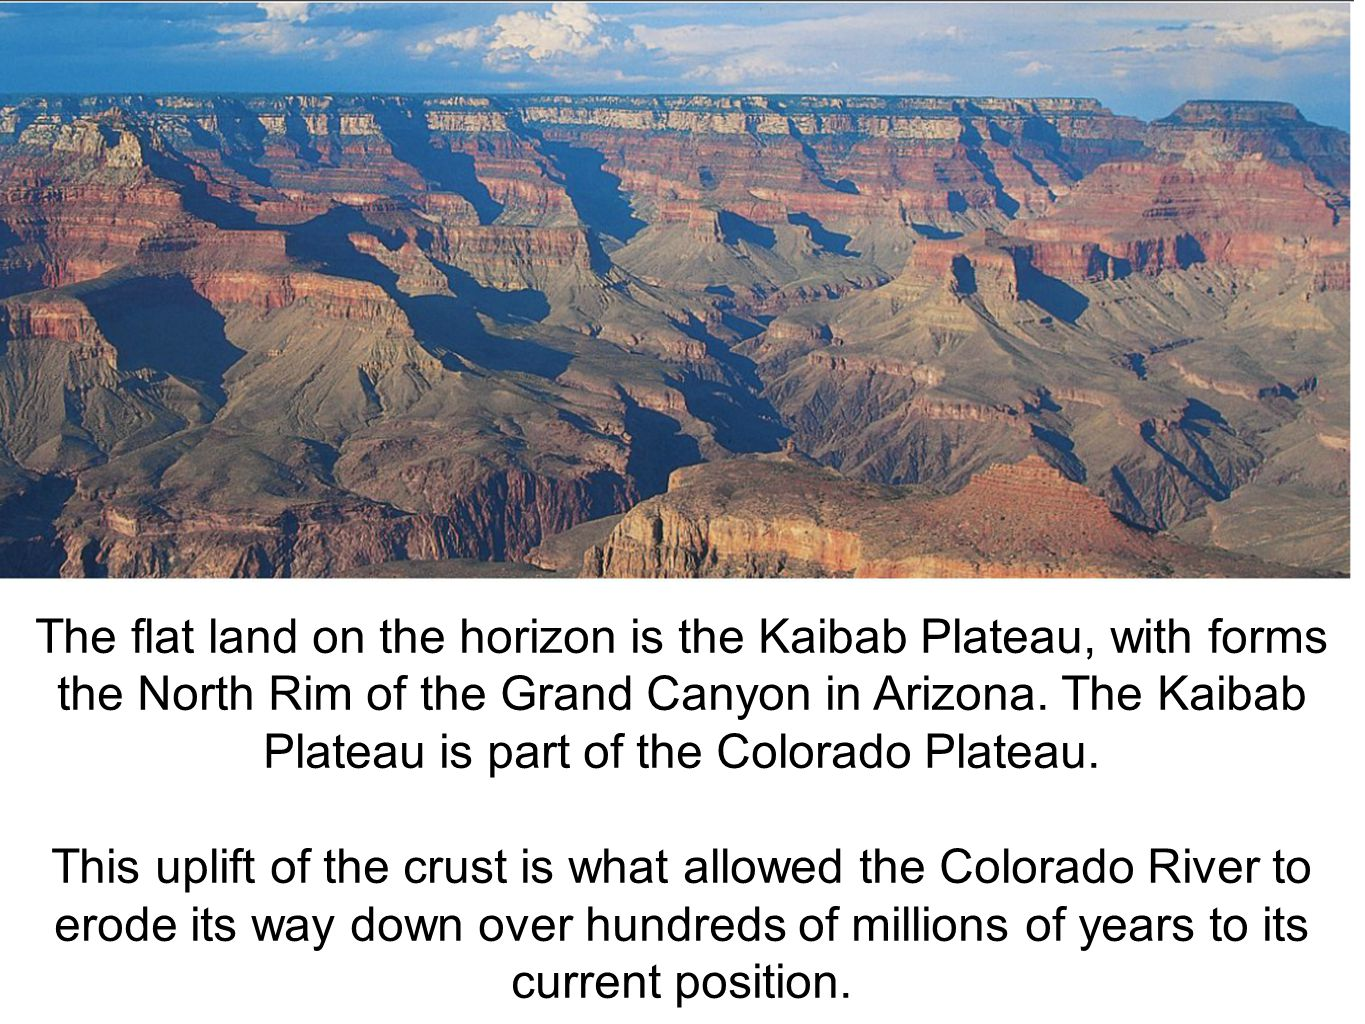 The flat land on the horizon is the Kaibab Plateau, with forms the North Rim of the Grand Canyon in Arizona. The Kaibab Plateau is part of the Colorado Plateau.